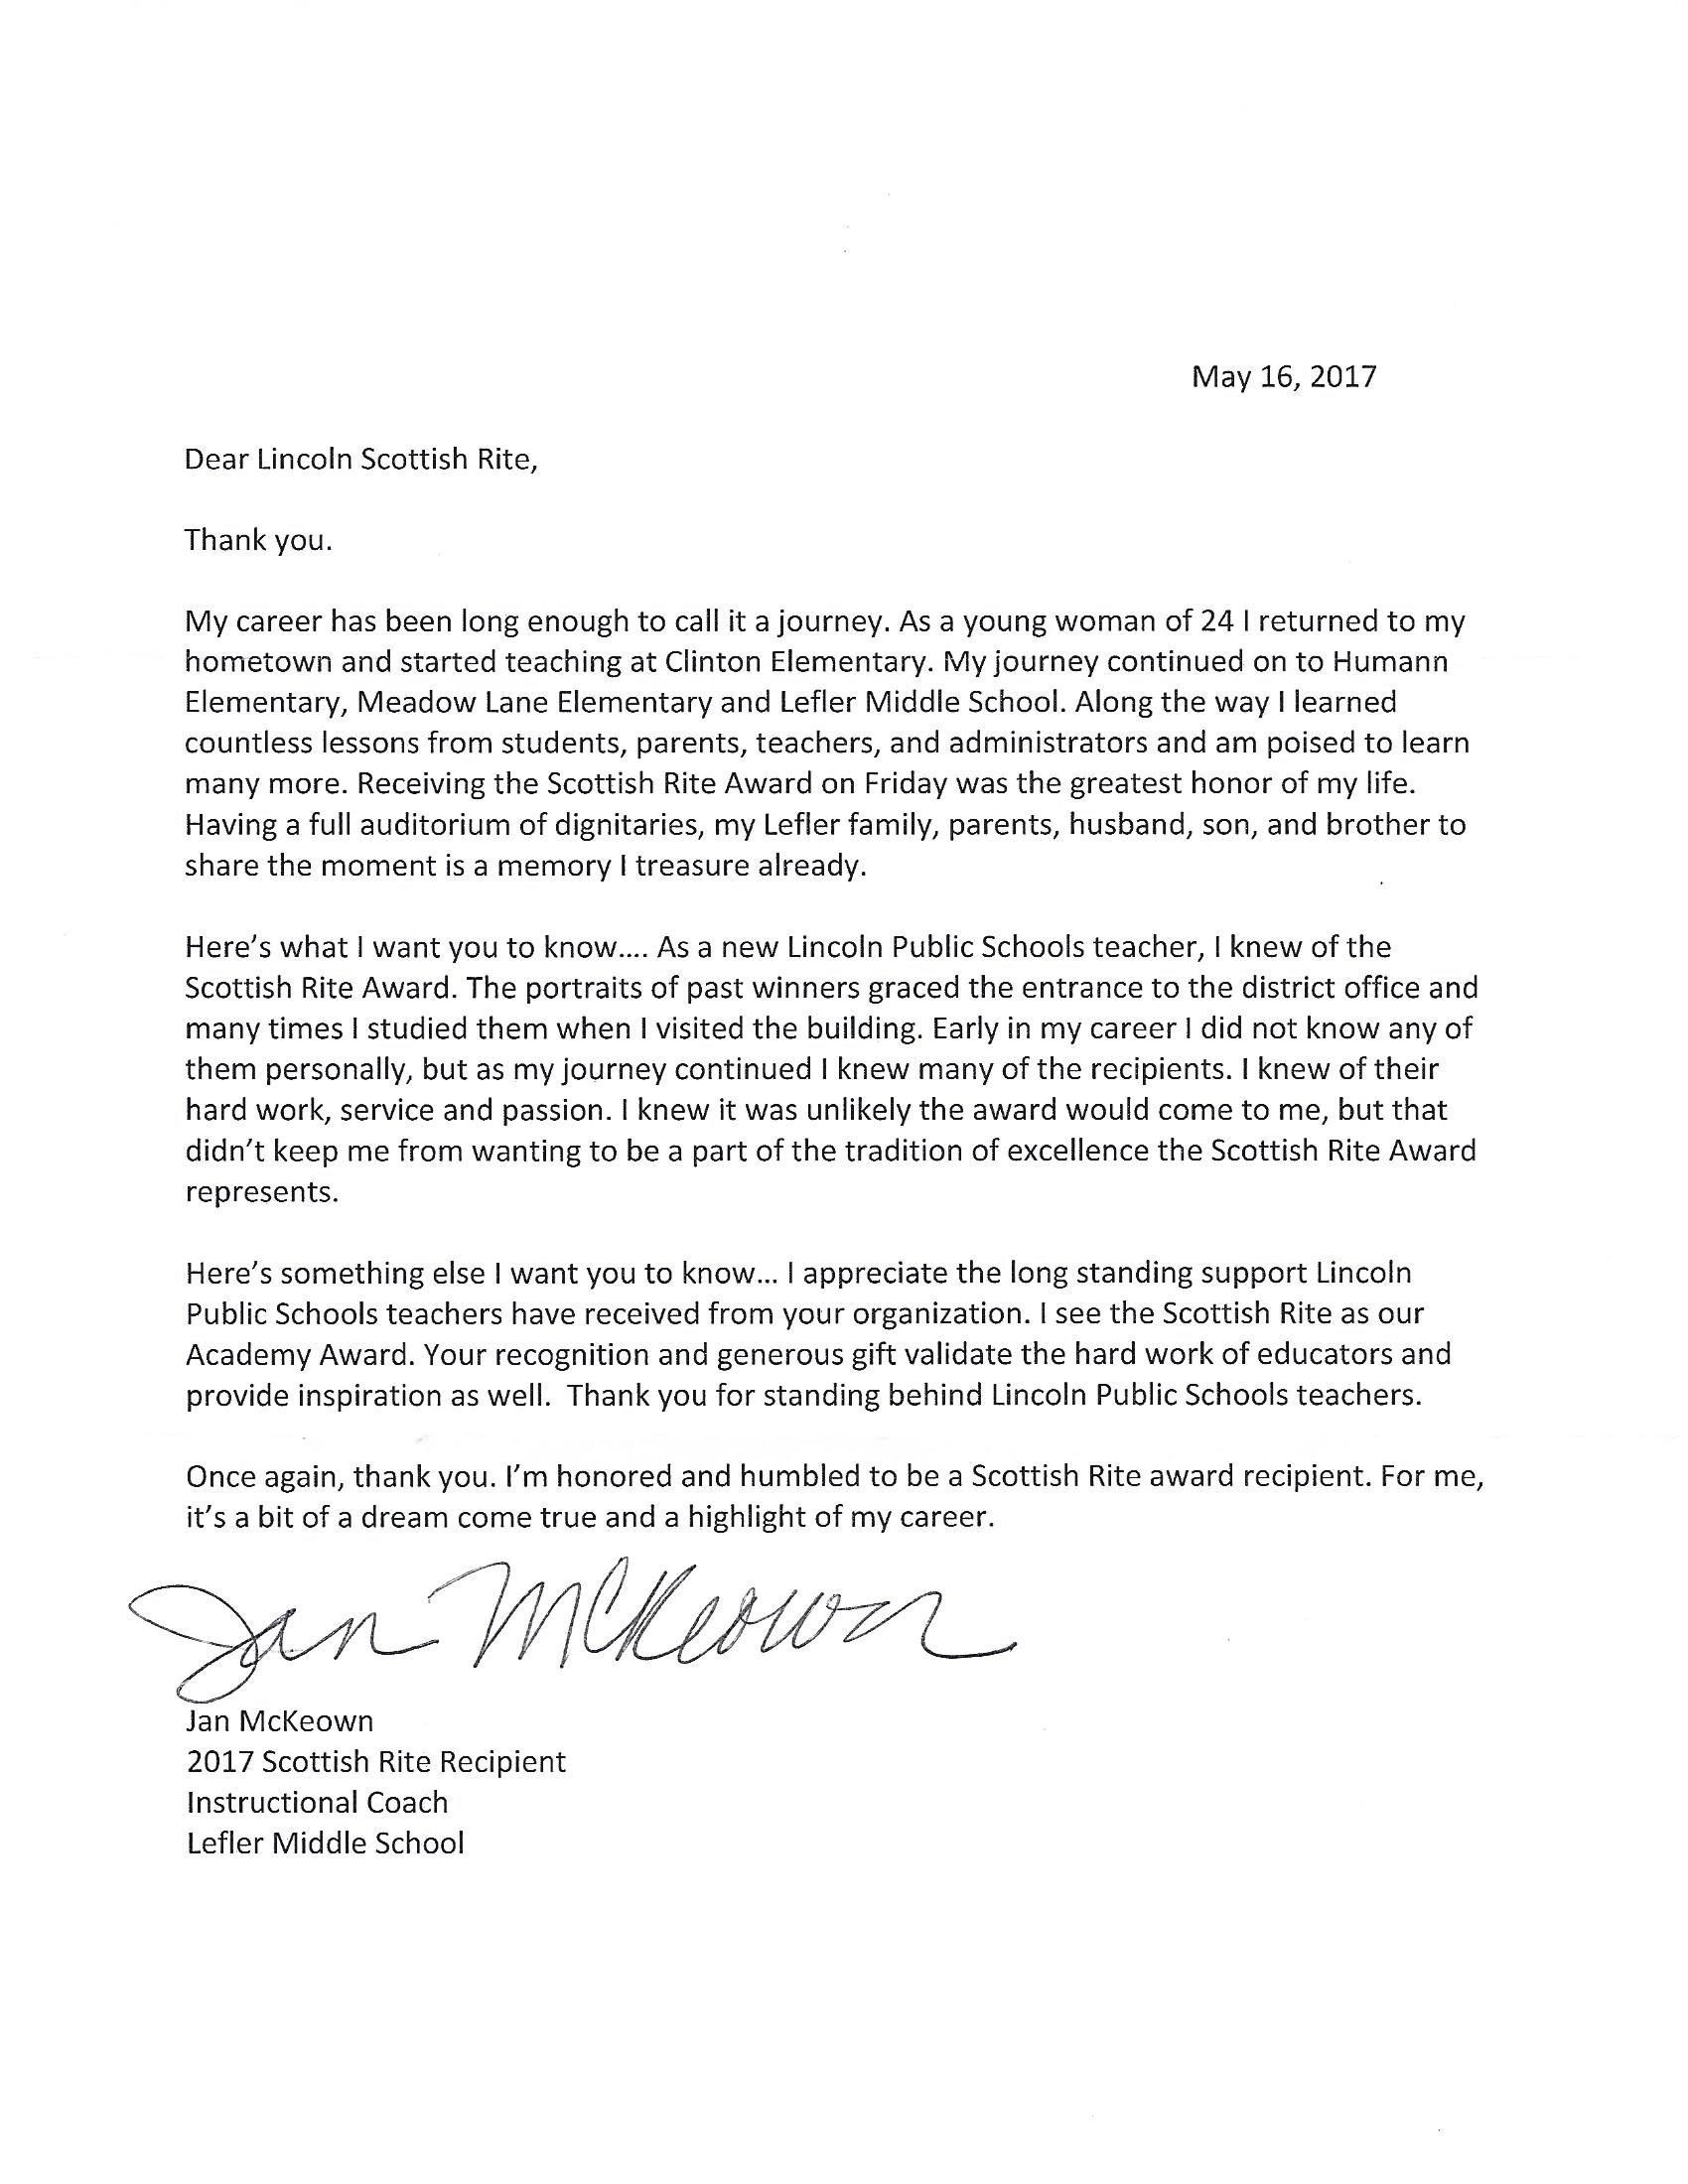 Click above to read a thank you letter from 2017 Distinguished Teacher of the Year Jan McKeown to Lincoln's Scottish Rite Masons.